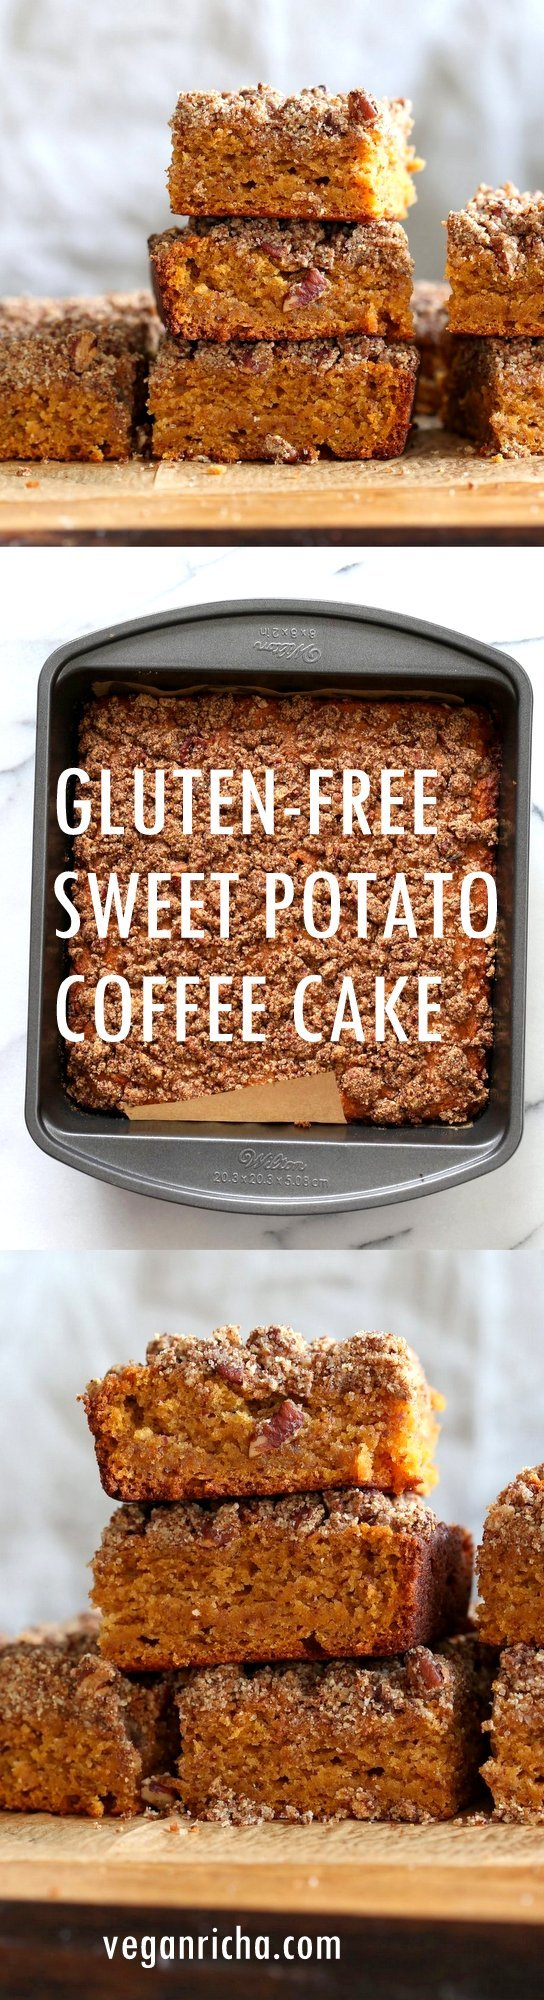 Vegan Gluten free Coffee Cake - Simple Fall Sweet Potato Pecan Crumb Cake with Pumpkin pie spices. Warm Cozy slice of cake. Gluten-free Soy-free Recipe.  | VeganRicha.com